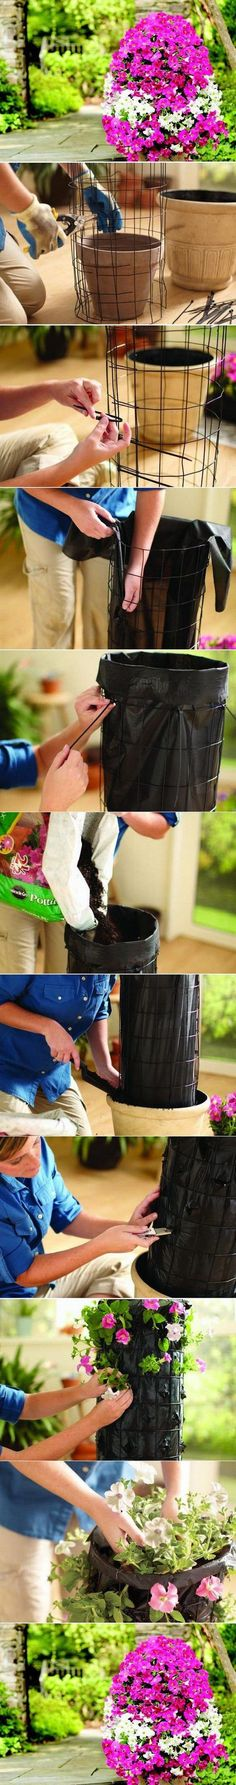 DIY Flower Tower. What a gorgeous and awesome DIY project for your backyard!